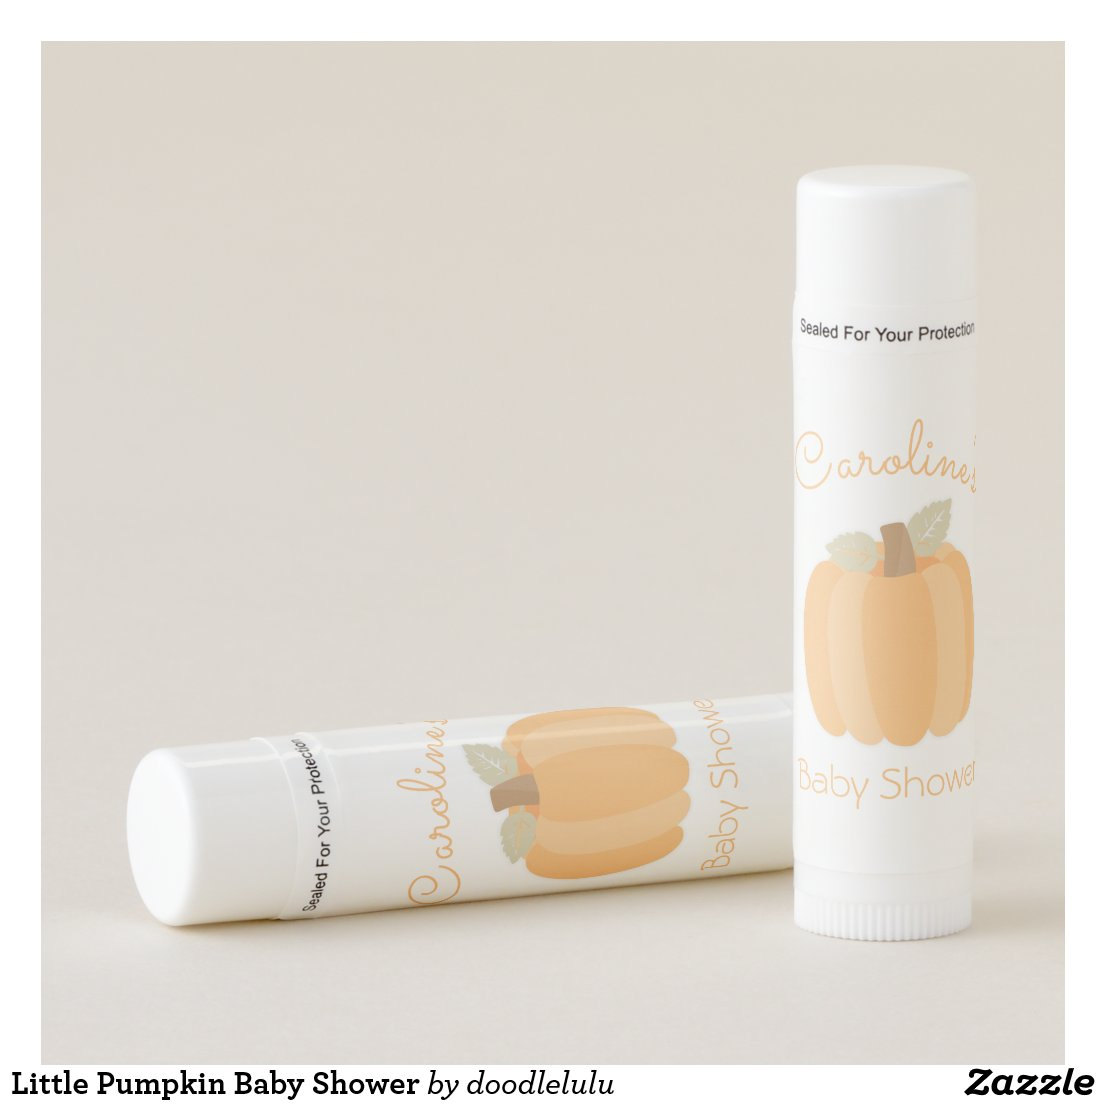 Little Pumpkin Baby Shower Lip Balm